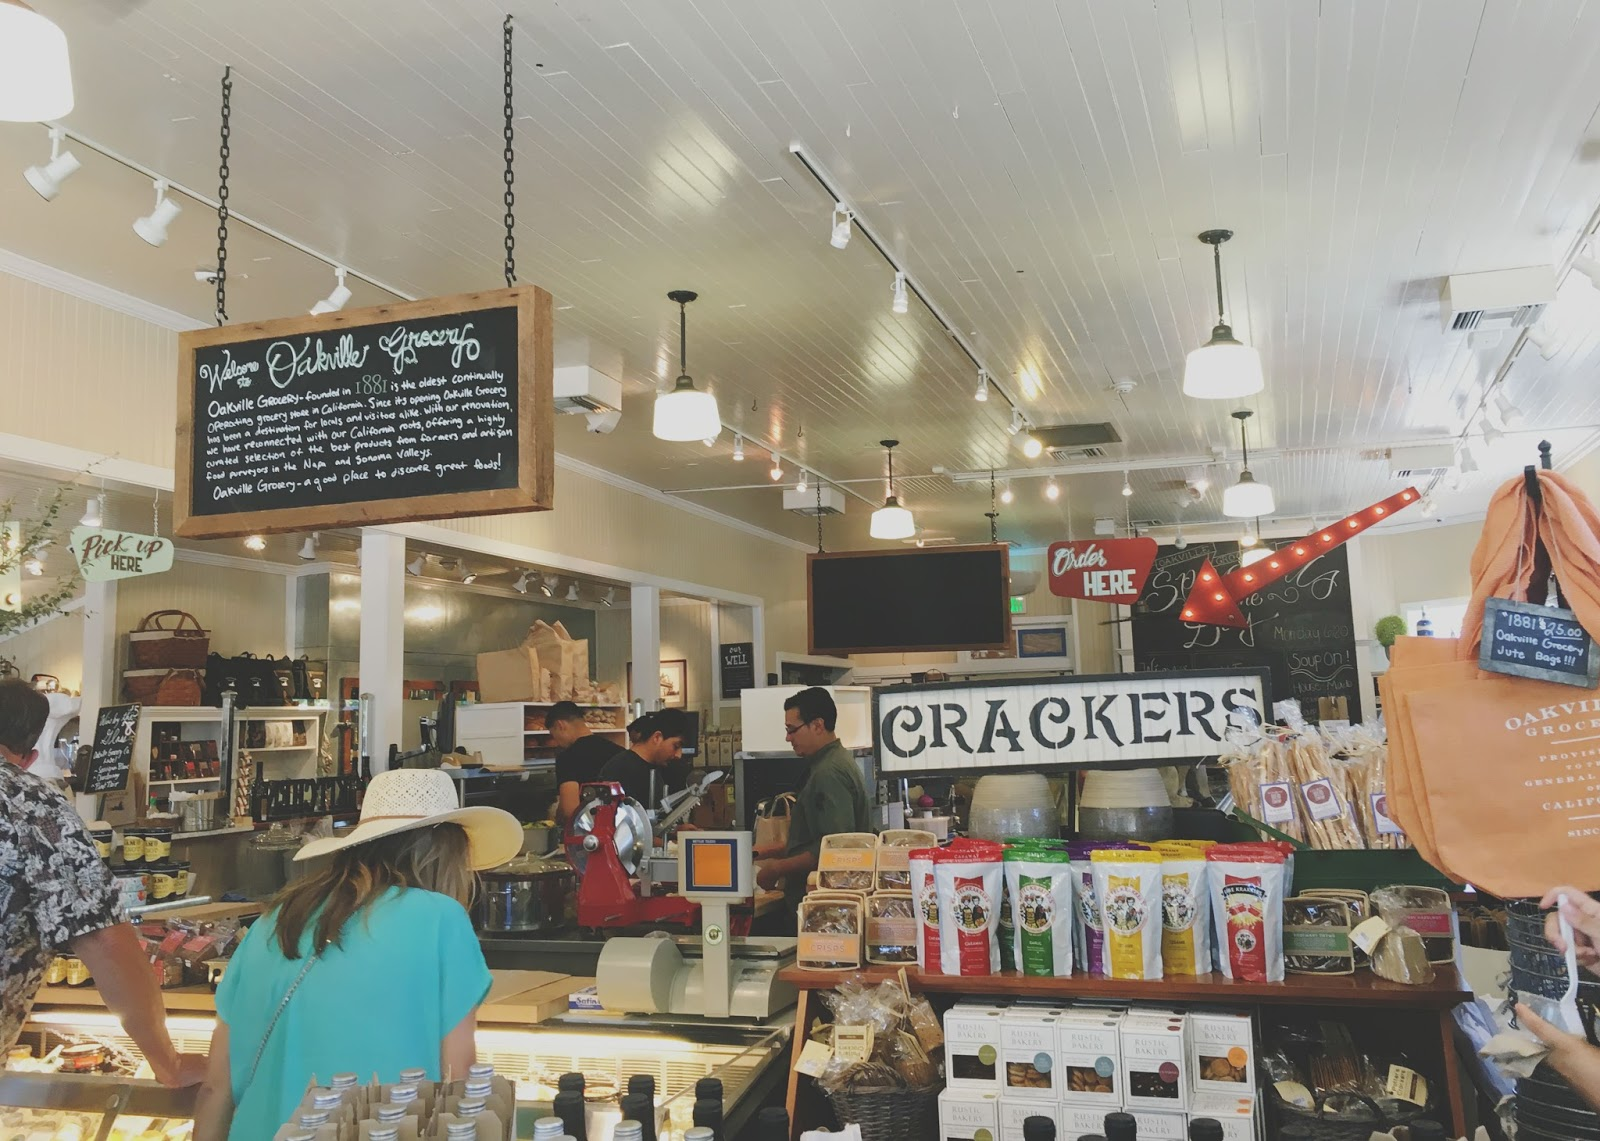 Oakville Grocery in Napa, California